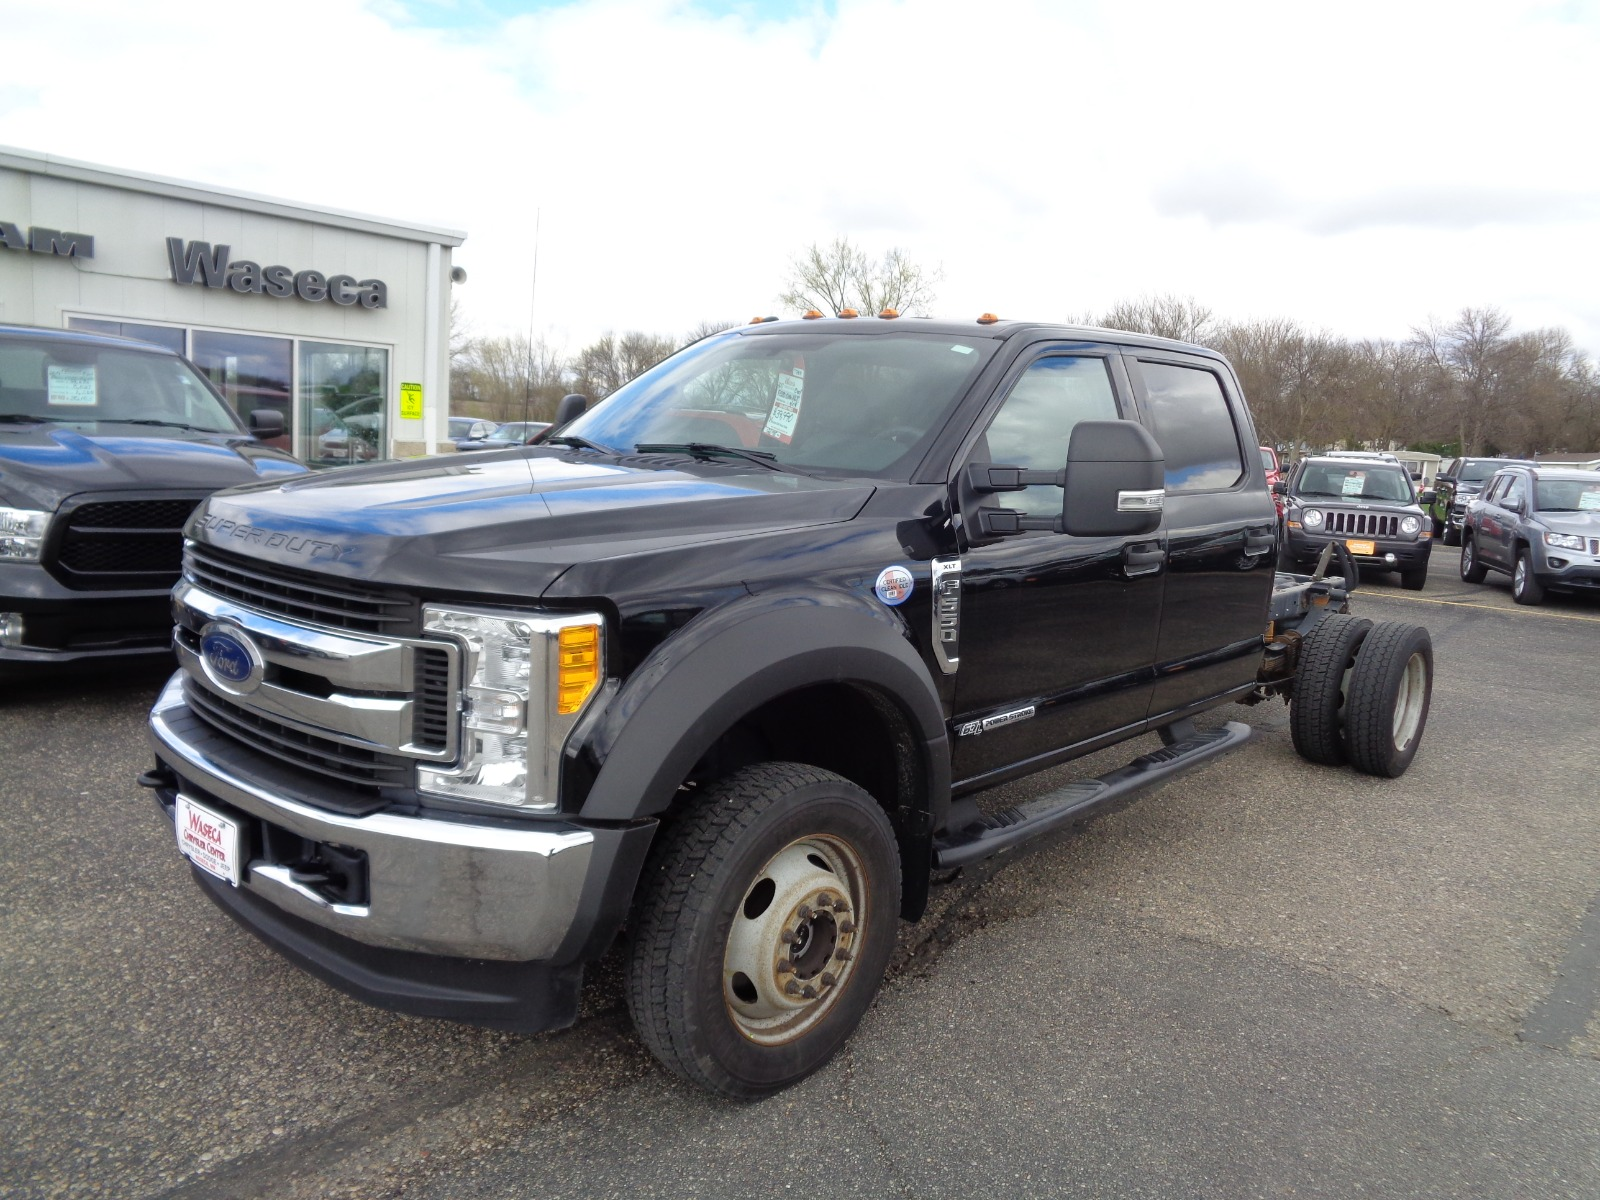 Pre-Owned 2017 Ford Super Duty F-550 Drw